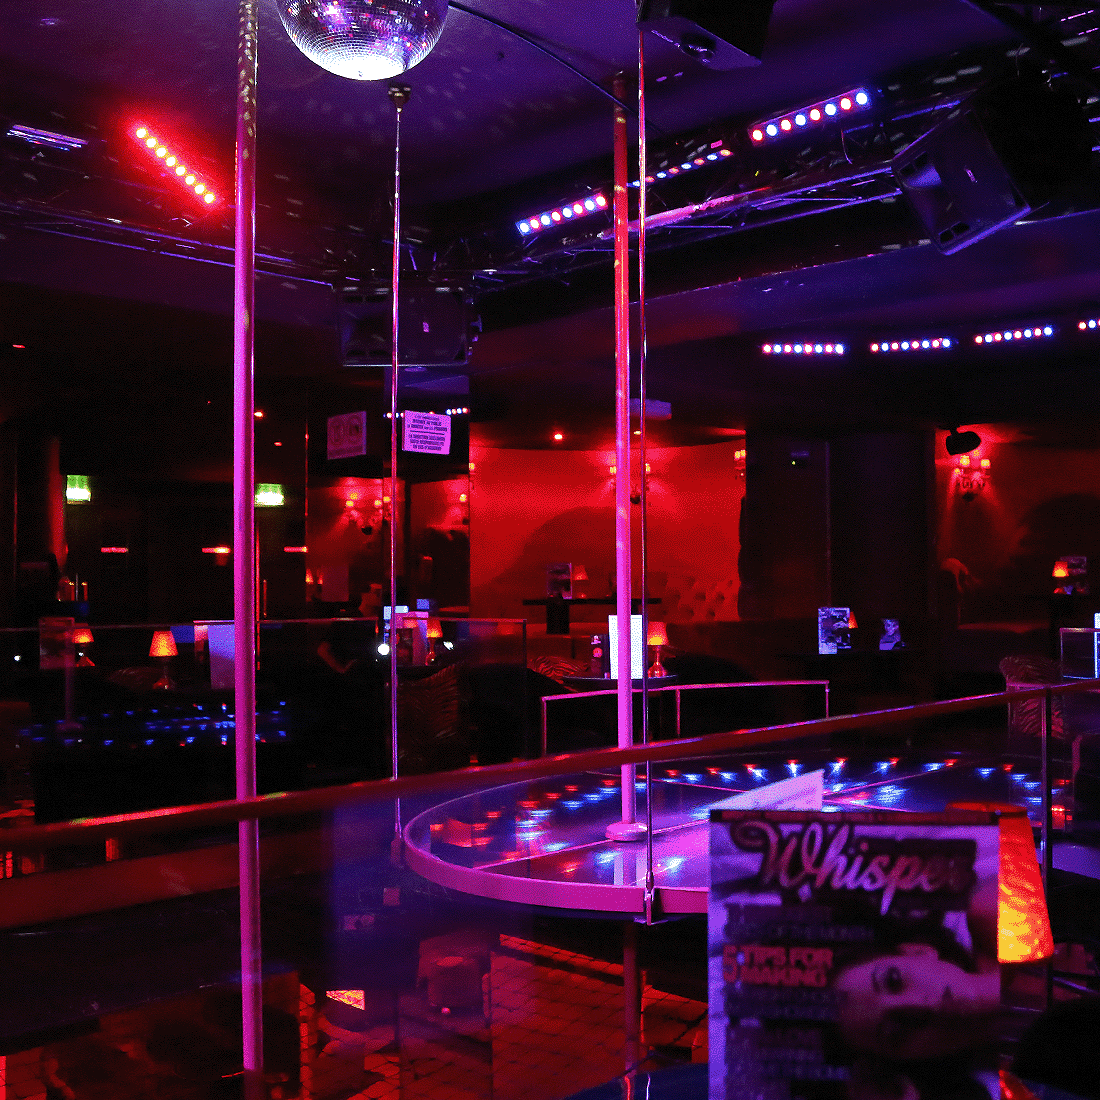 Houston Strip Club Allowed To Open, But Without Dancers